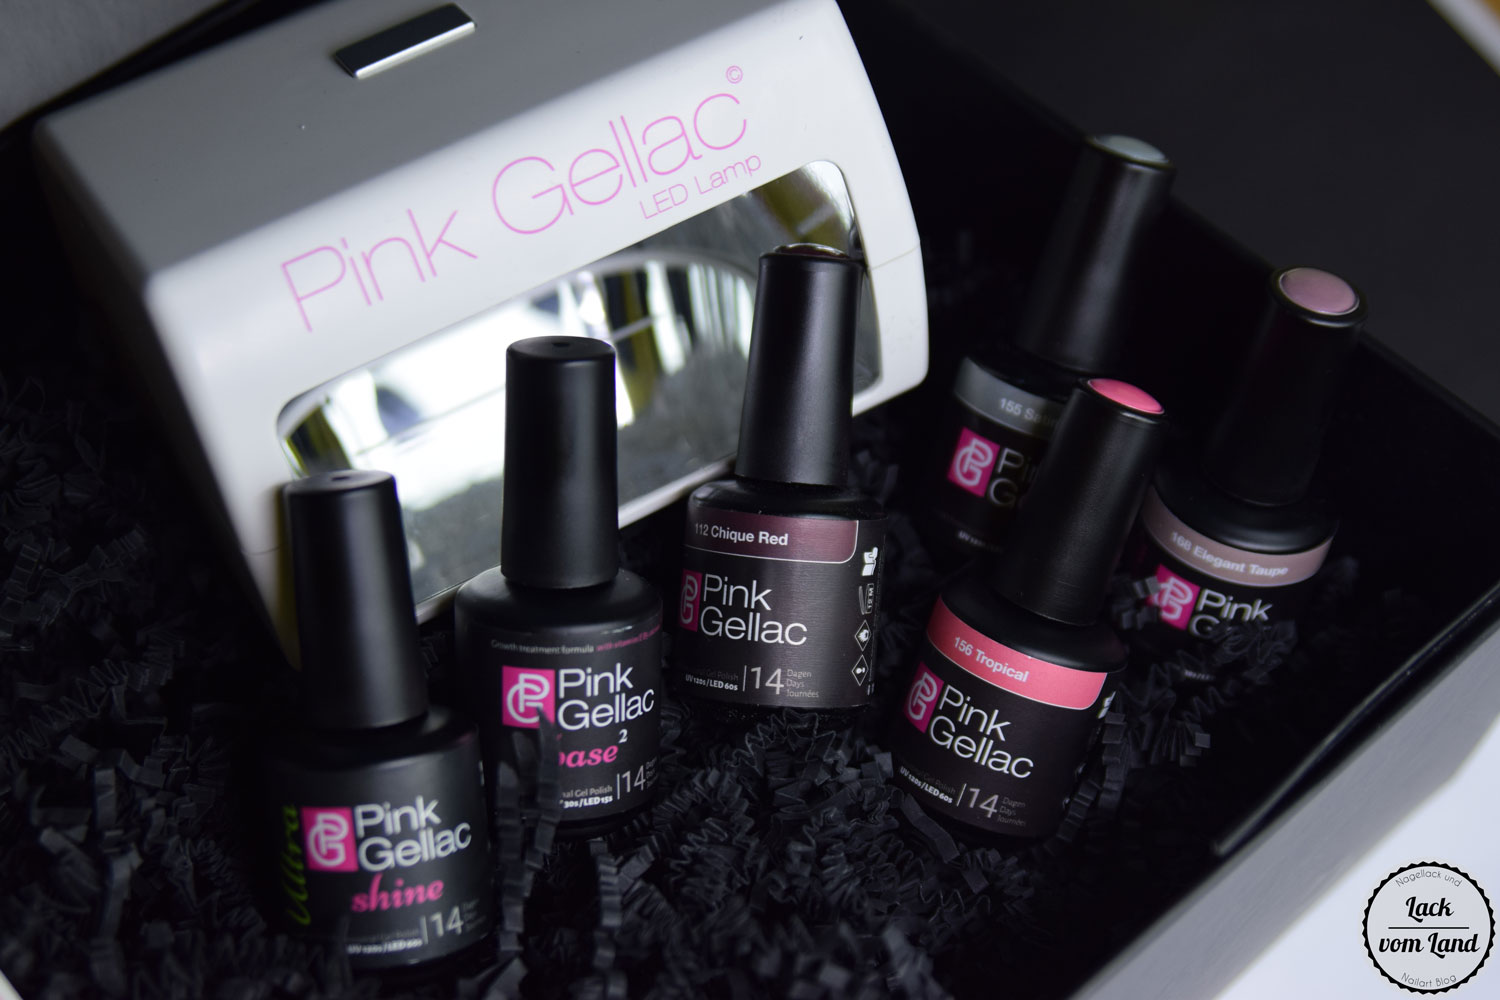 pink-gellac-set-review-10